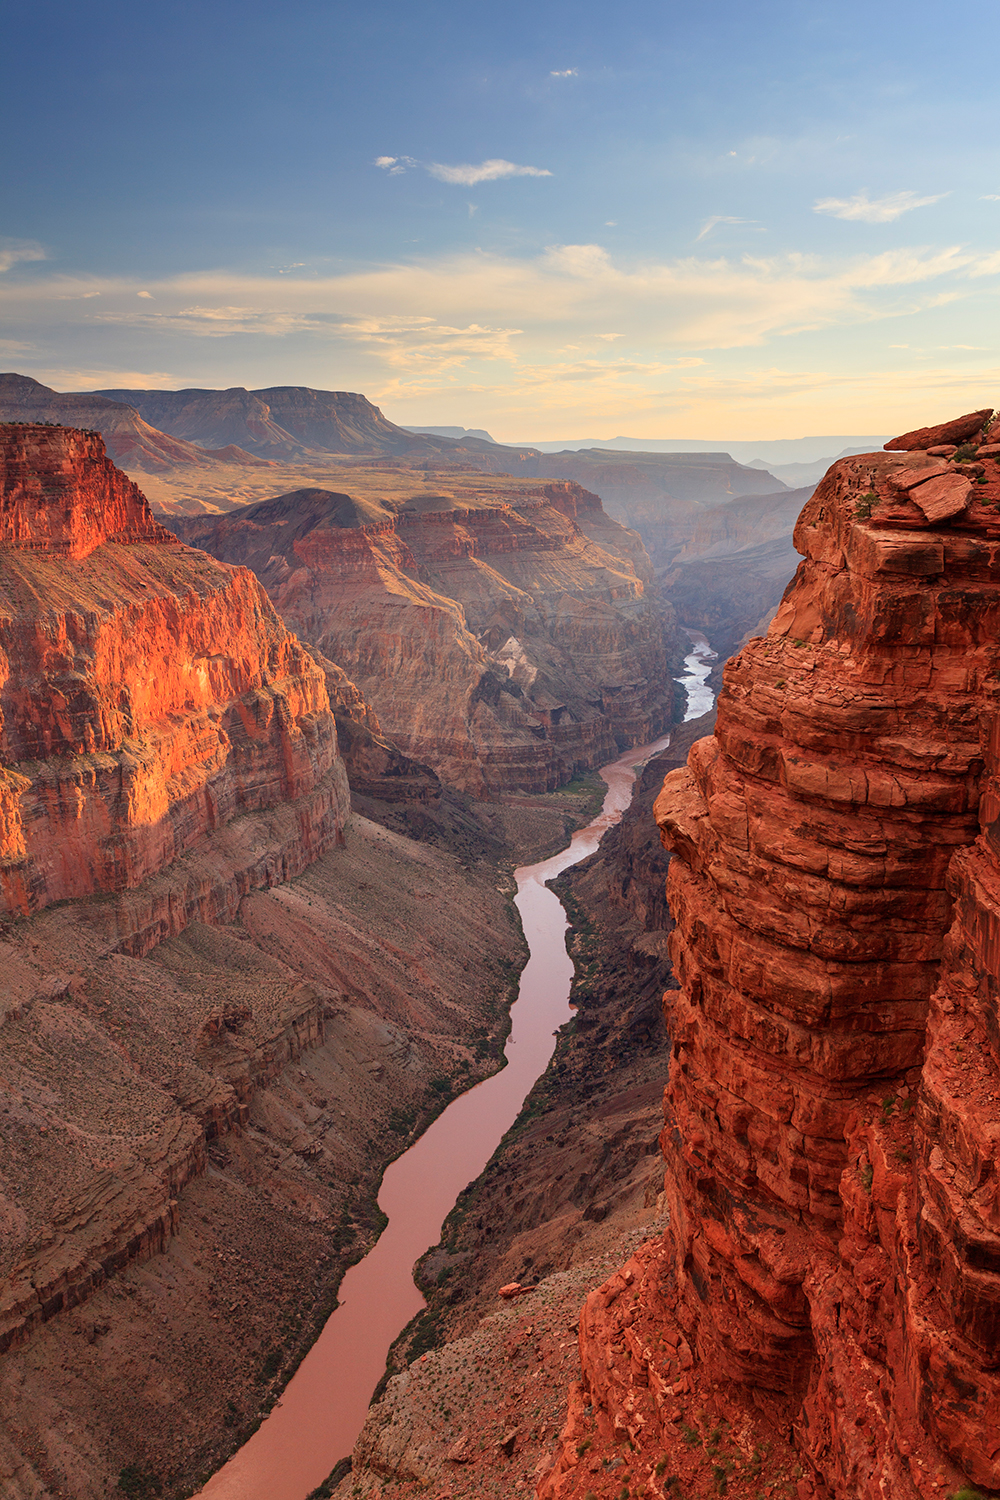 Visit 47 National Parks on One Amazing Road Trip